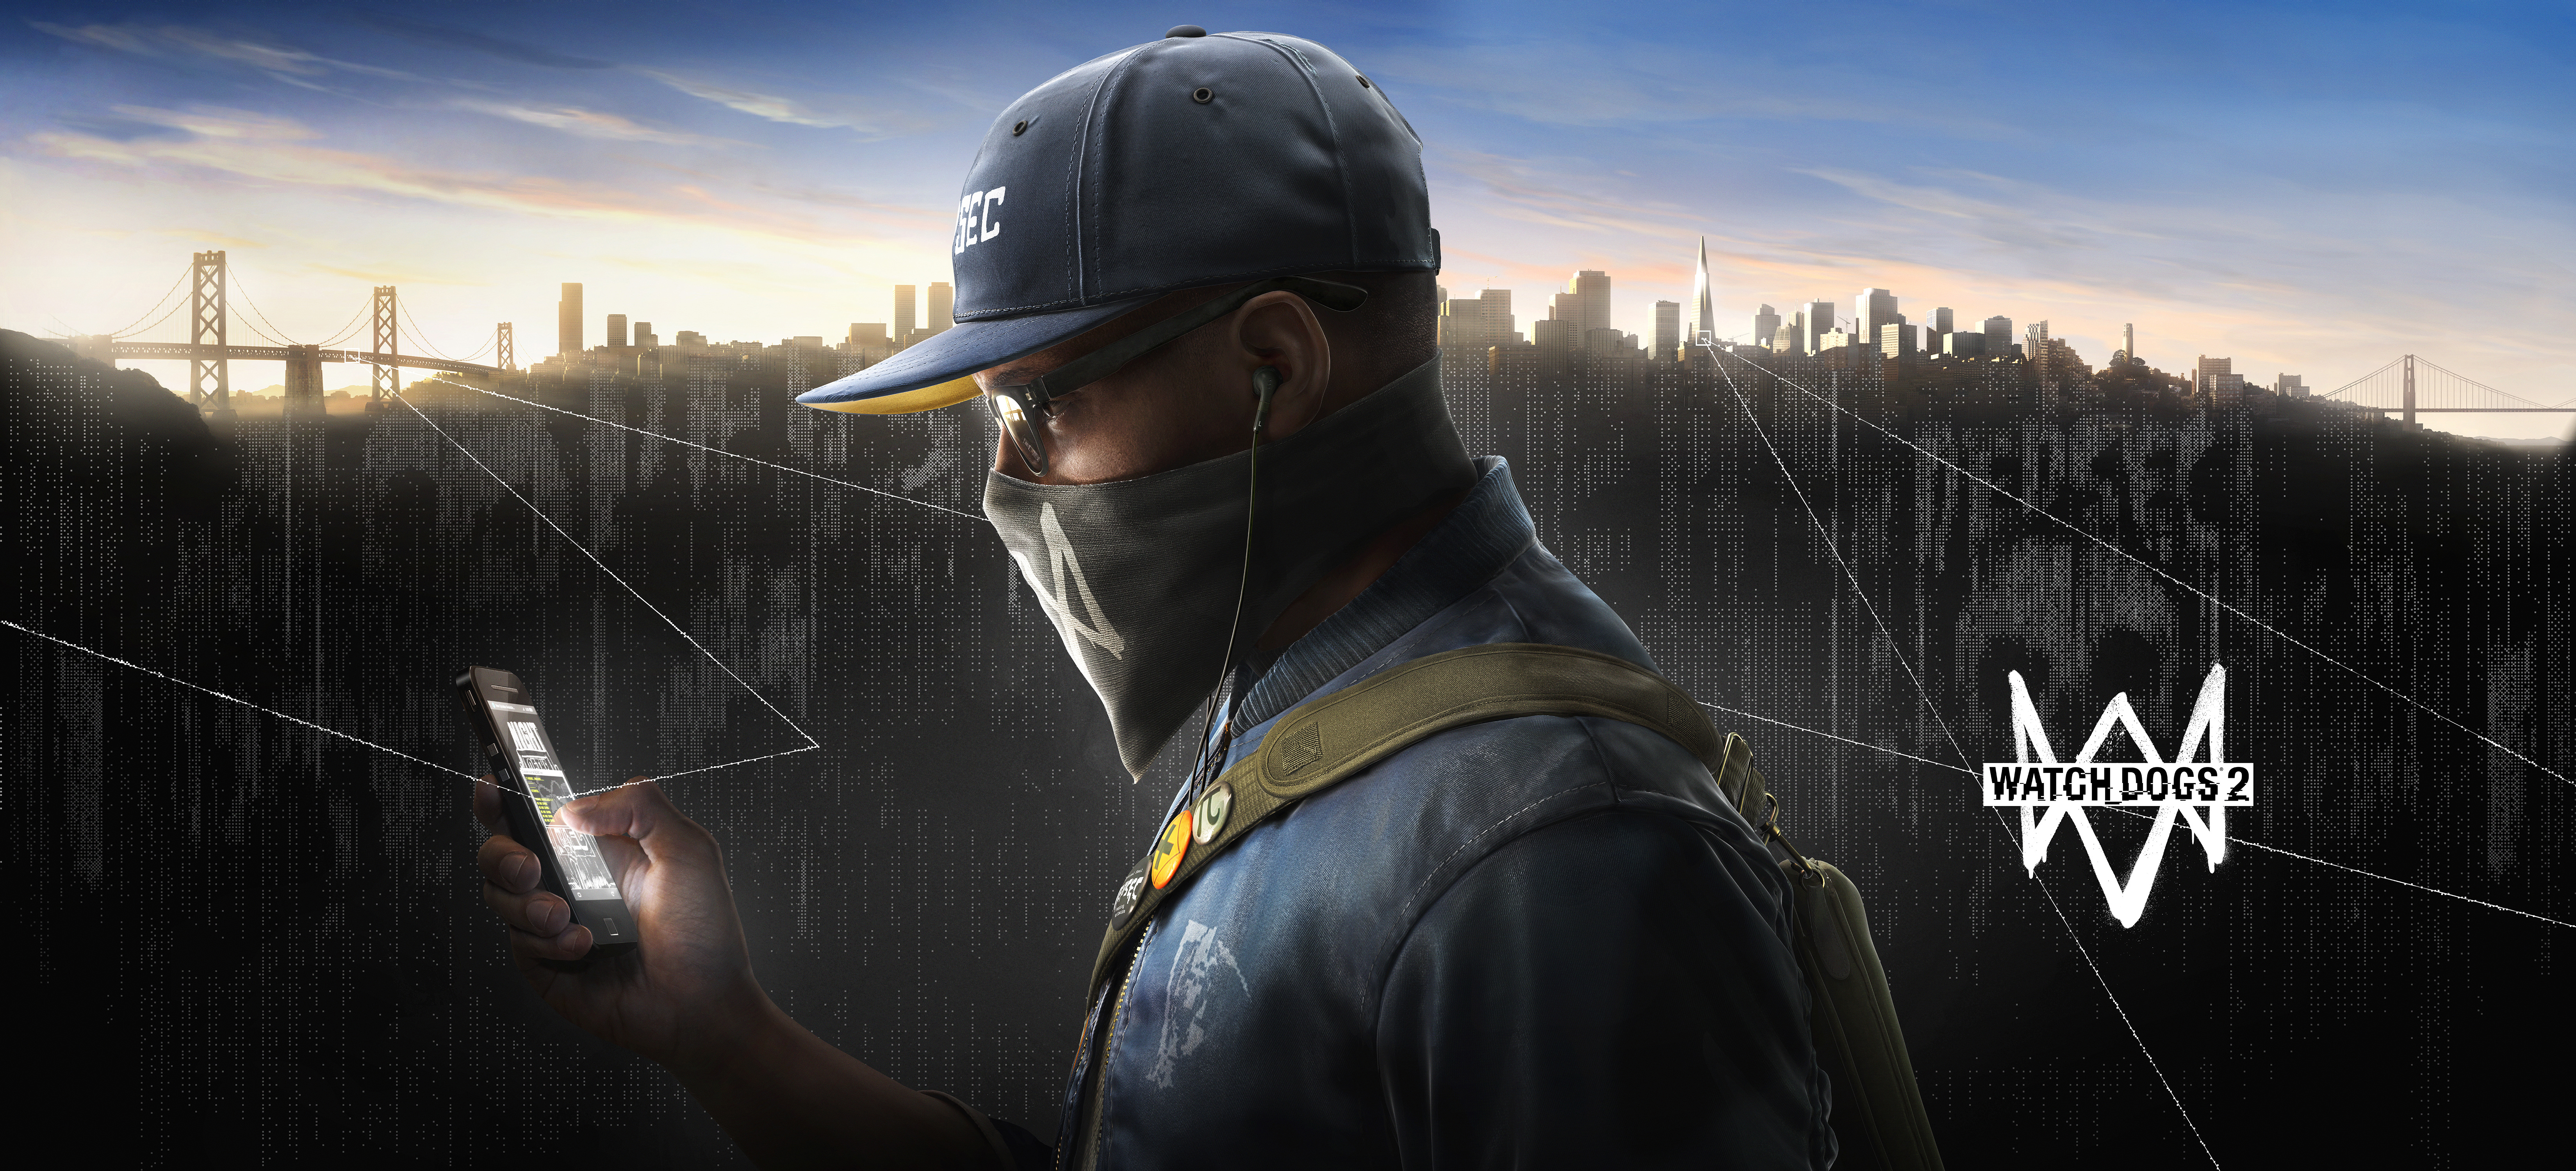 129 watch dogs 2 hd wallpapers | background images - wallpaper abyss